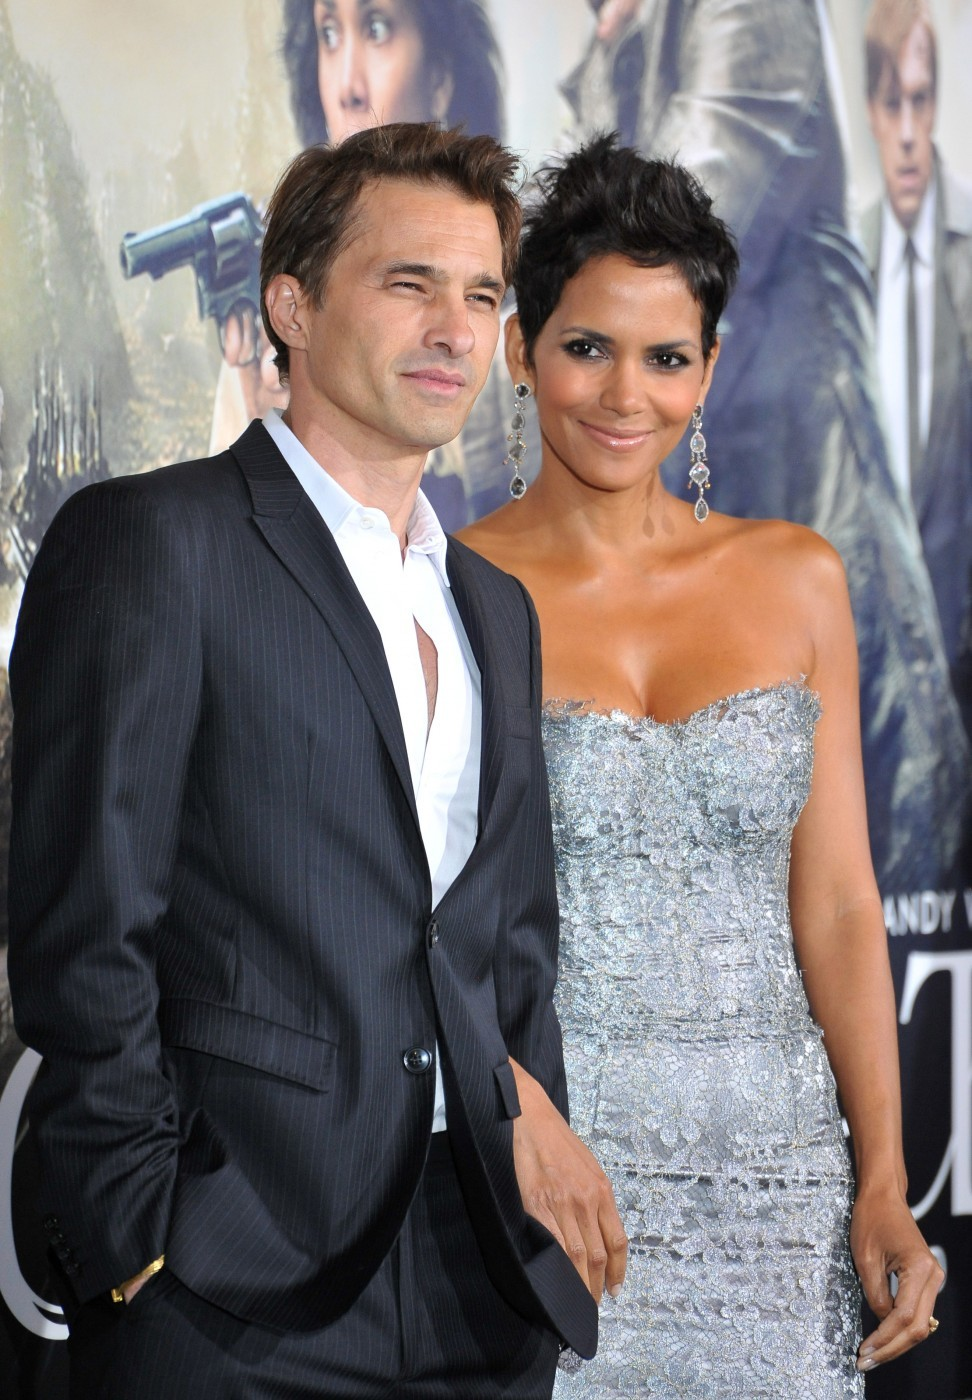 Tale Of The Missing Rings: Have Halle Berry And Oliver Martinez Split?